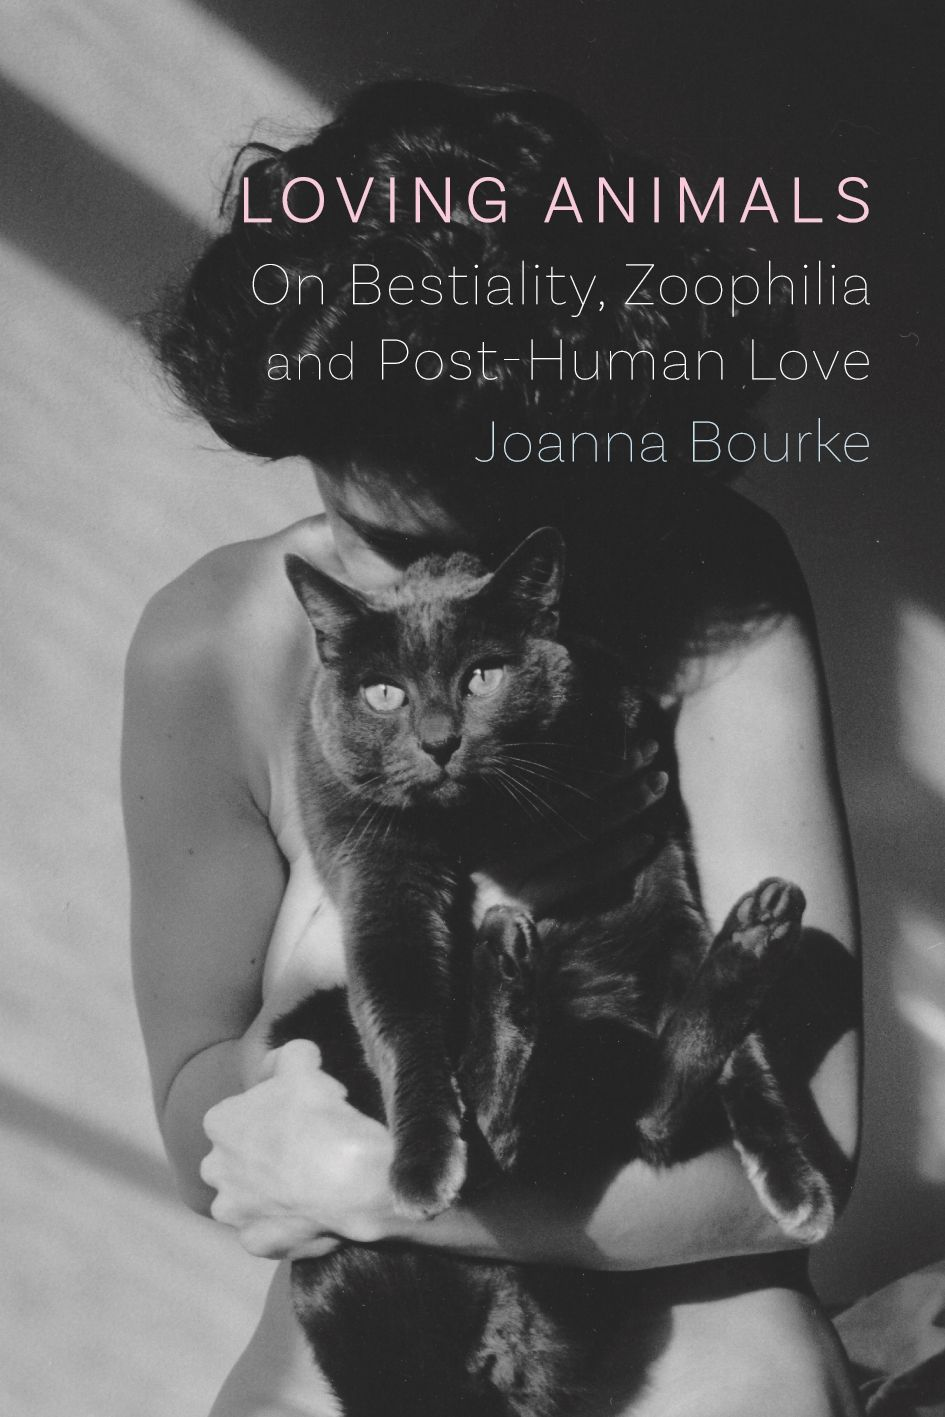 Loving Animals: On Bestiality, Zoophilia and Post-Human Love